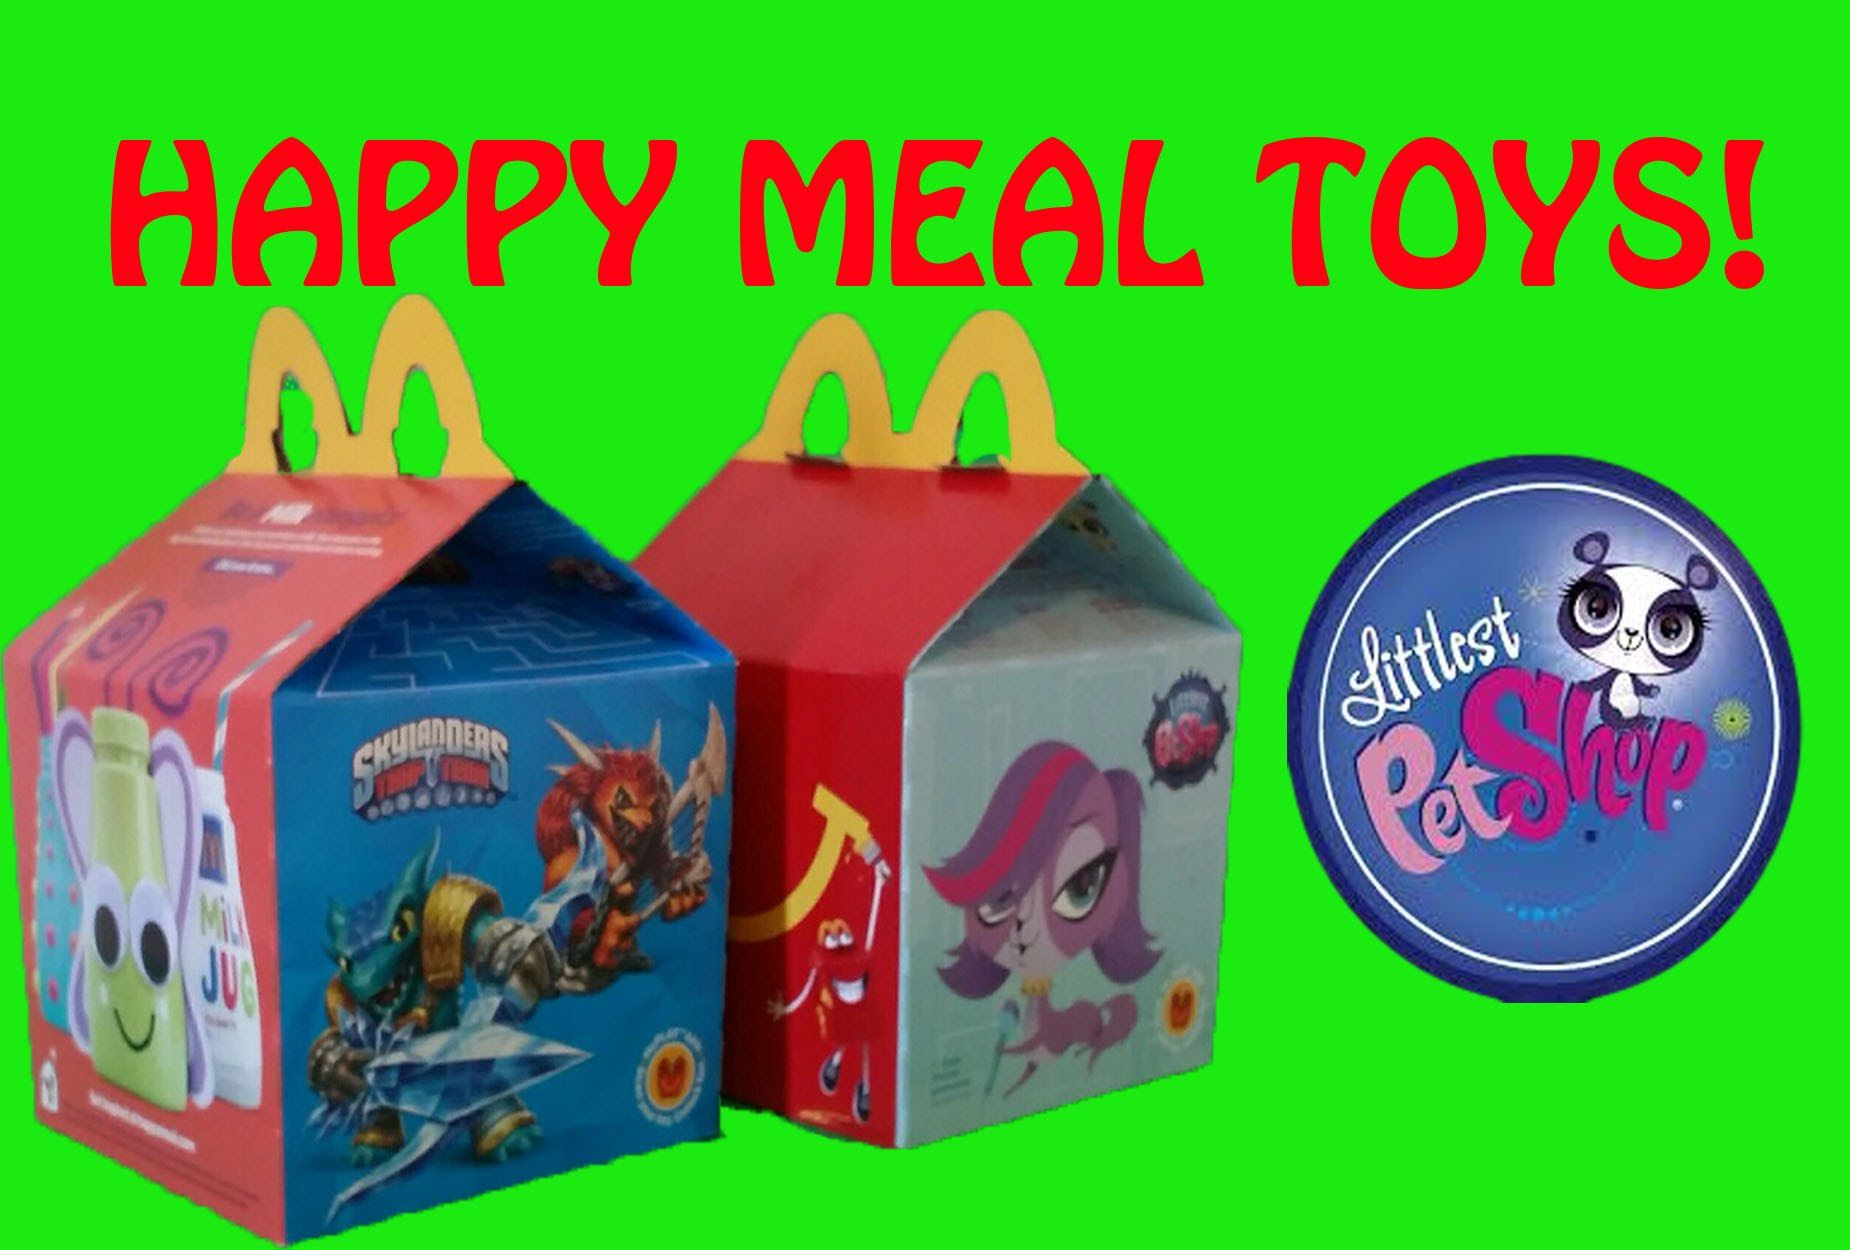 2015 Littlest Pet Shop McDonalds Happy Meal collectibles. 6 in all and we've collected all 6! We're opening them and putting each one together to show you guys just how adorable these LPS cuties are!!  https://youtu.be/TVaL31Je5gM https://youtu.be/TVaL31Je5gM https://www.youtube.com/watch?v=owt_zwP91wQ